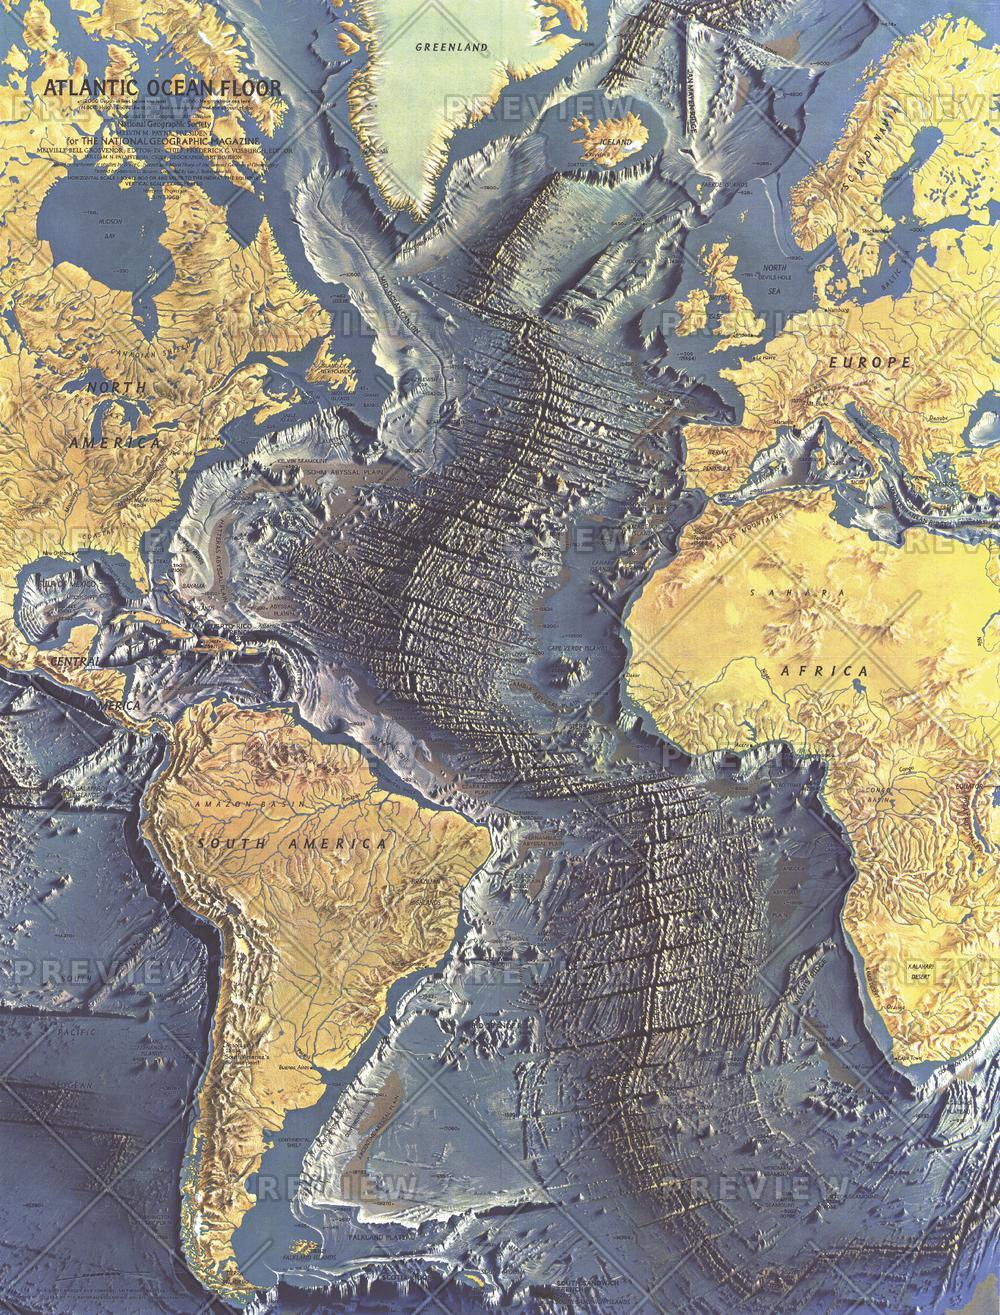 Atlantic Ocean Floor  -  Published 1968